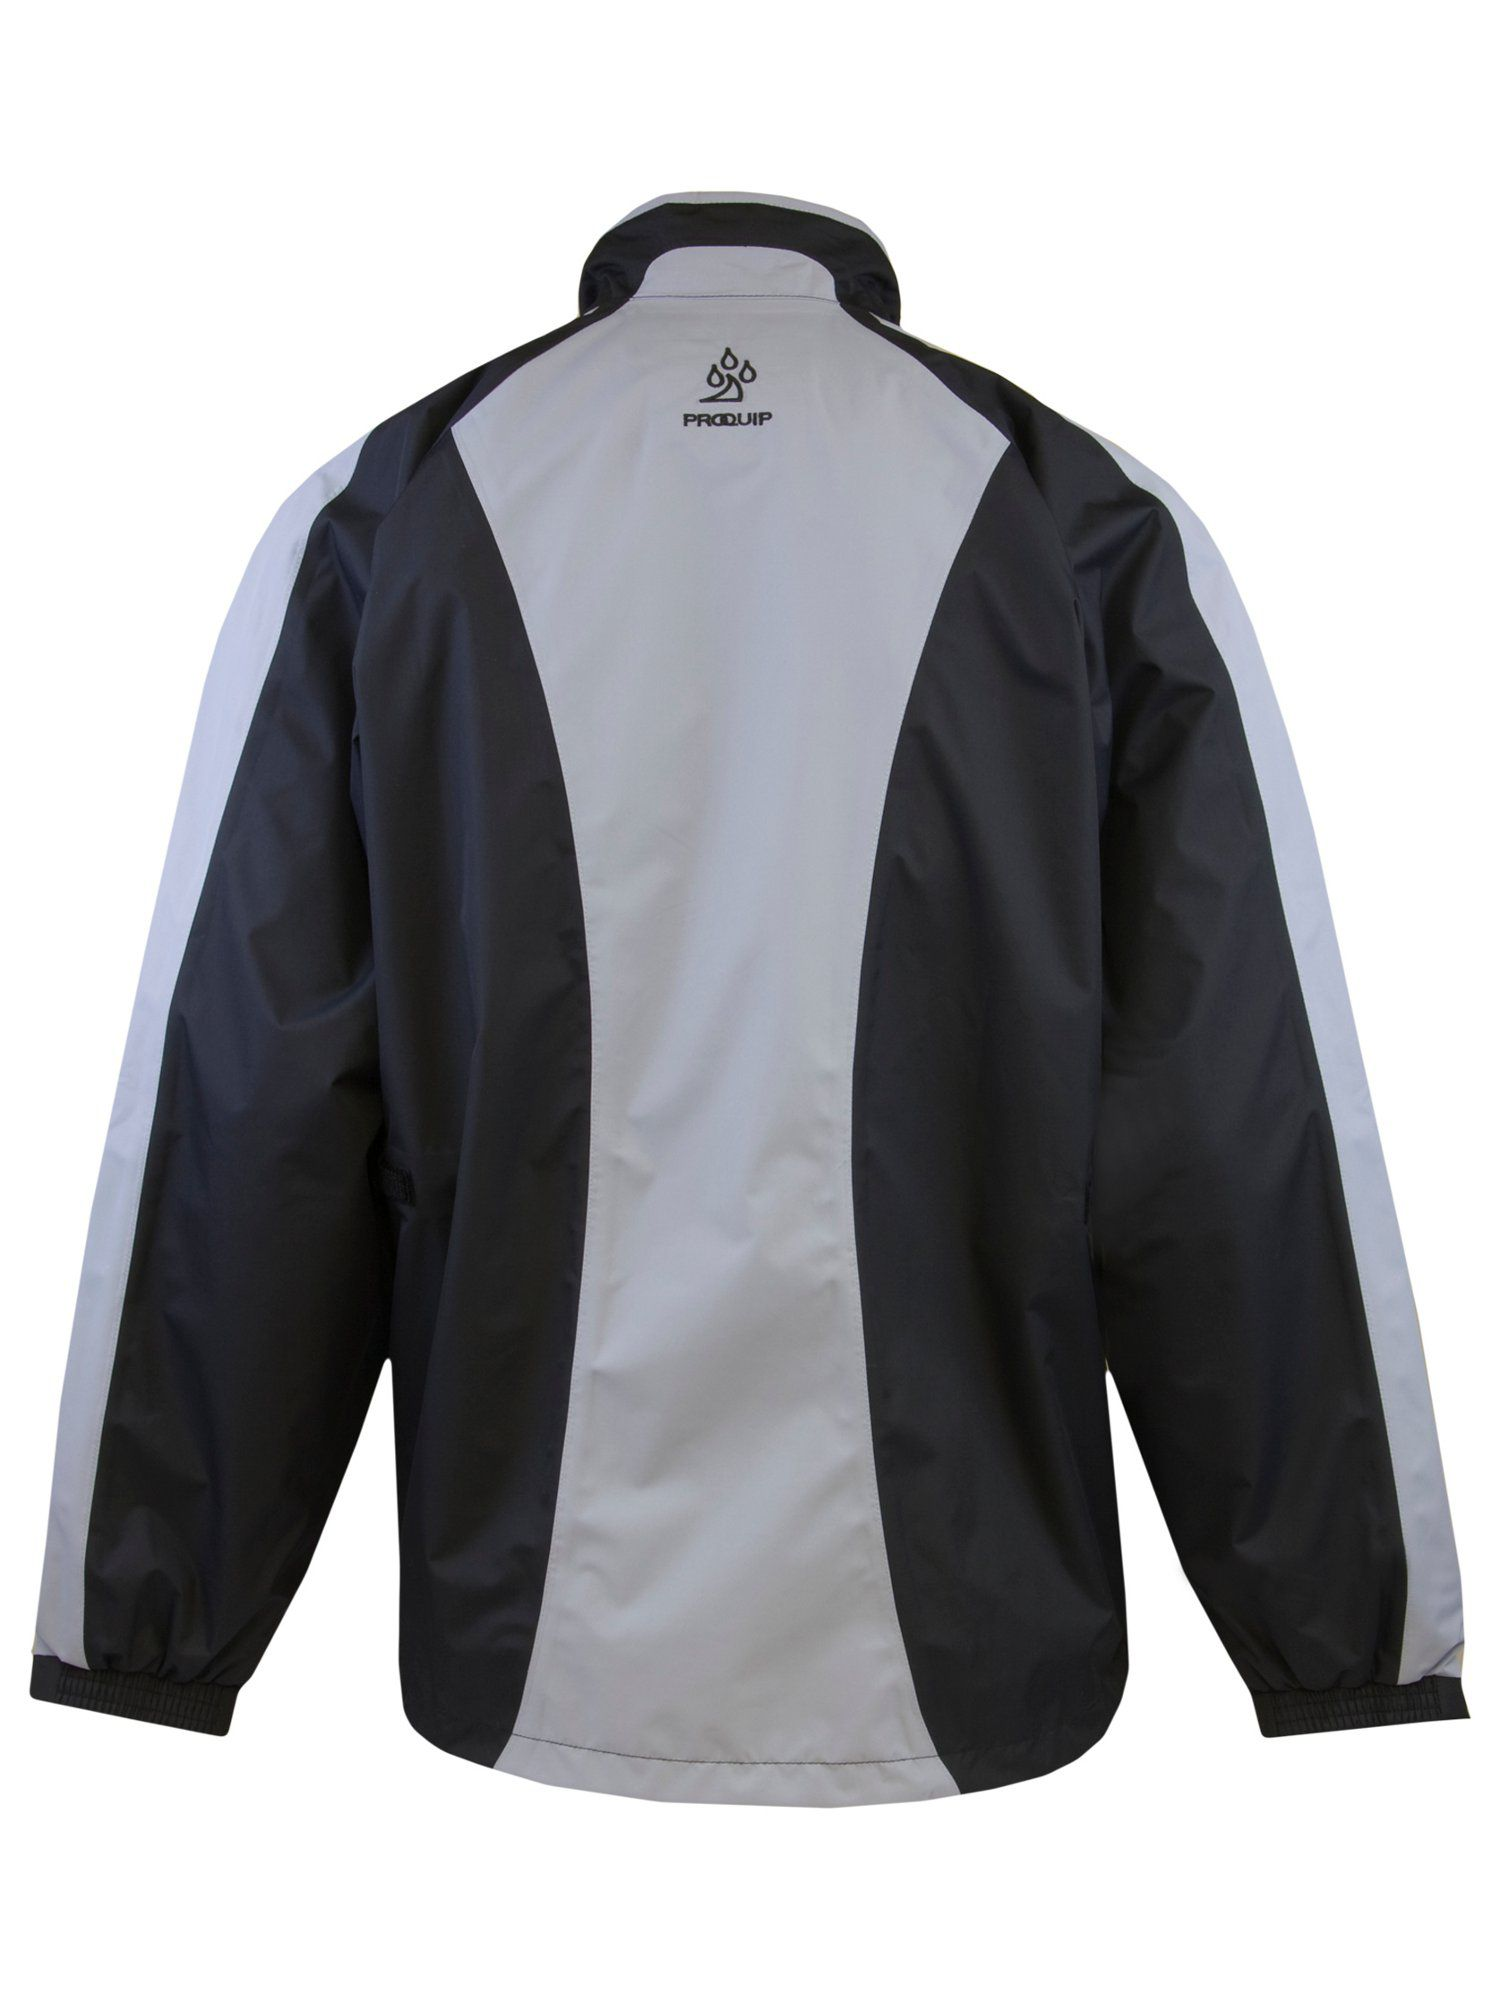 Aquastorm pro waterproof jacket